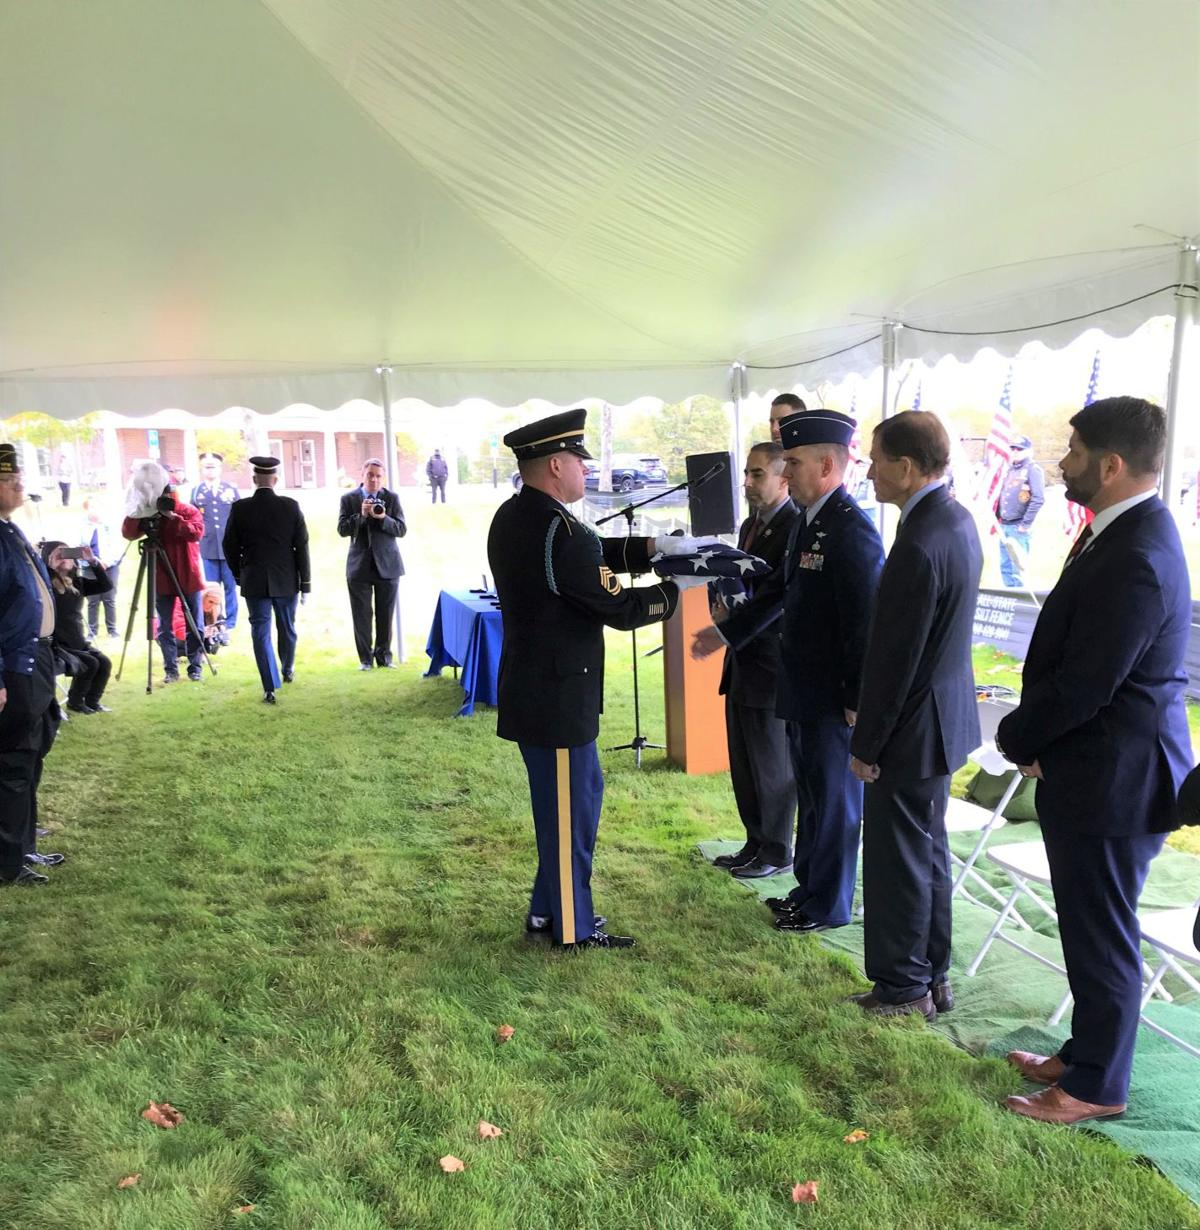 Remains of 4 veterans buried with honor at CT state cemetery